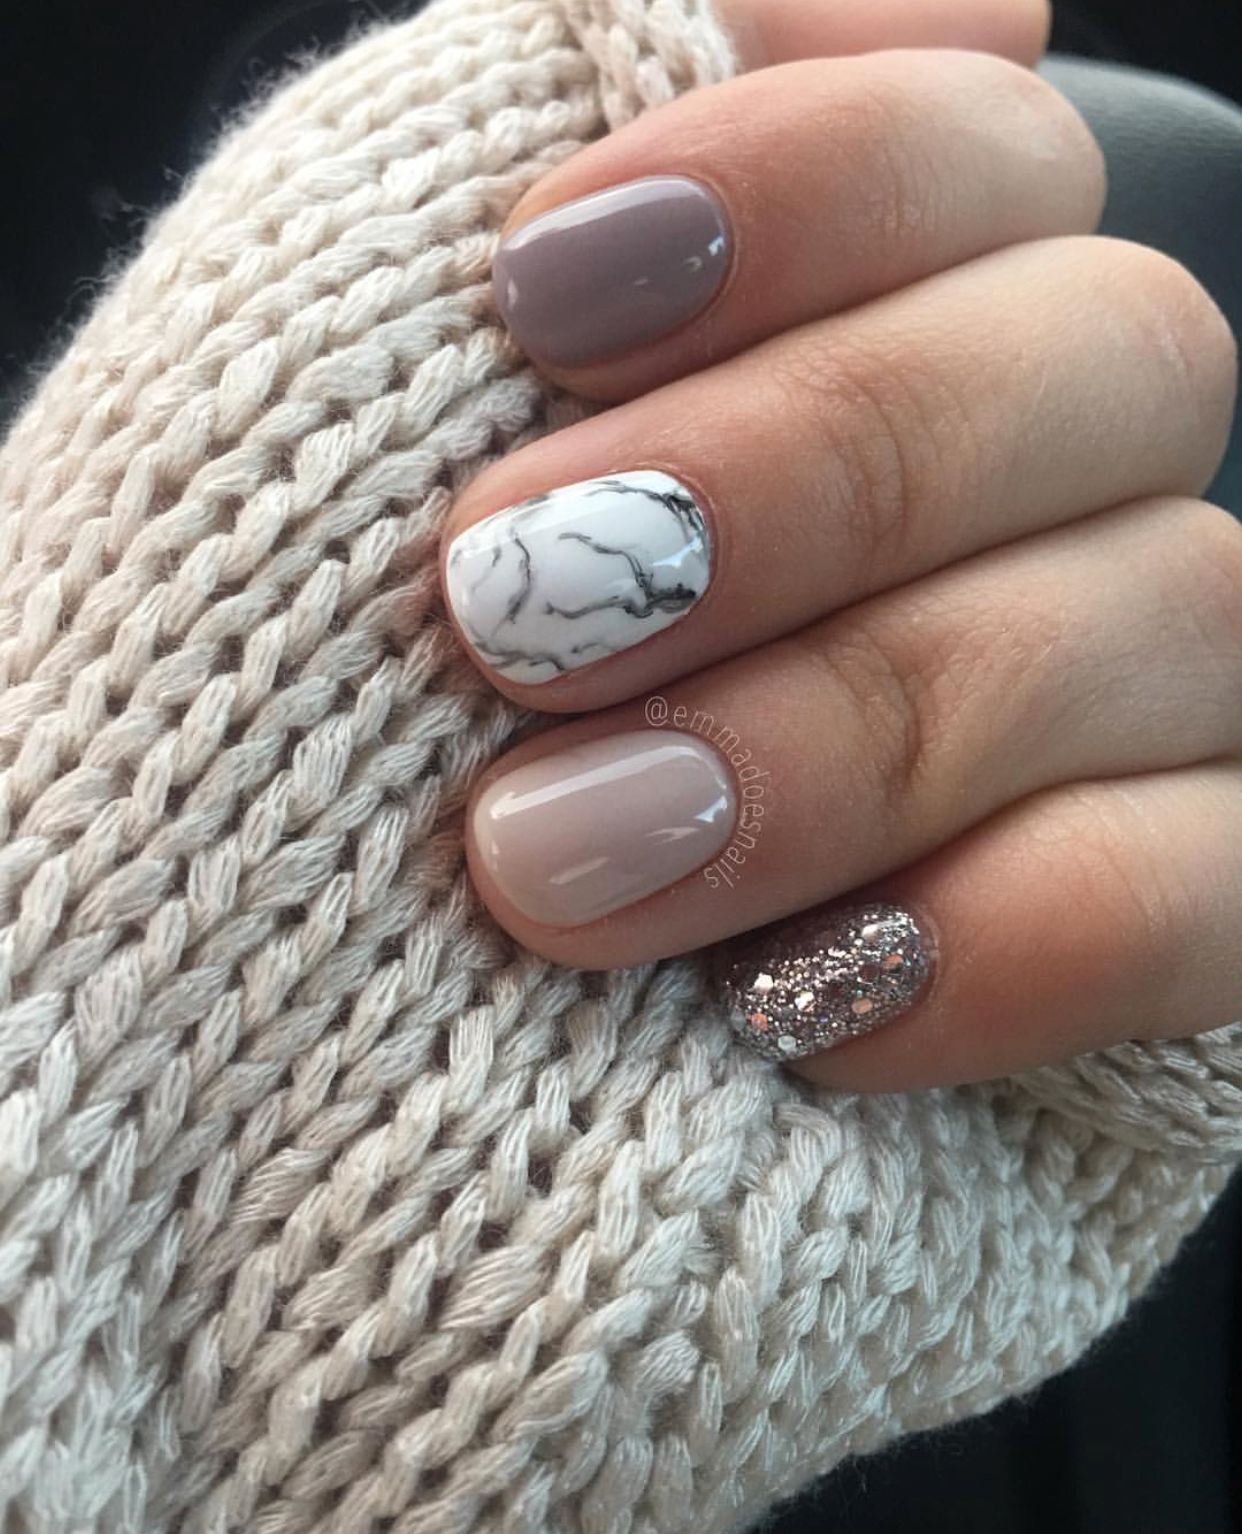 Gel, gel polish, gel nails, short nails, nail art, nail